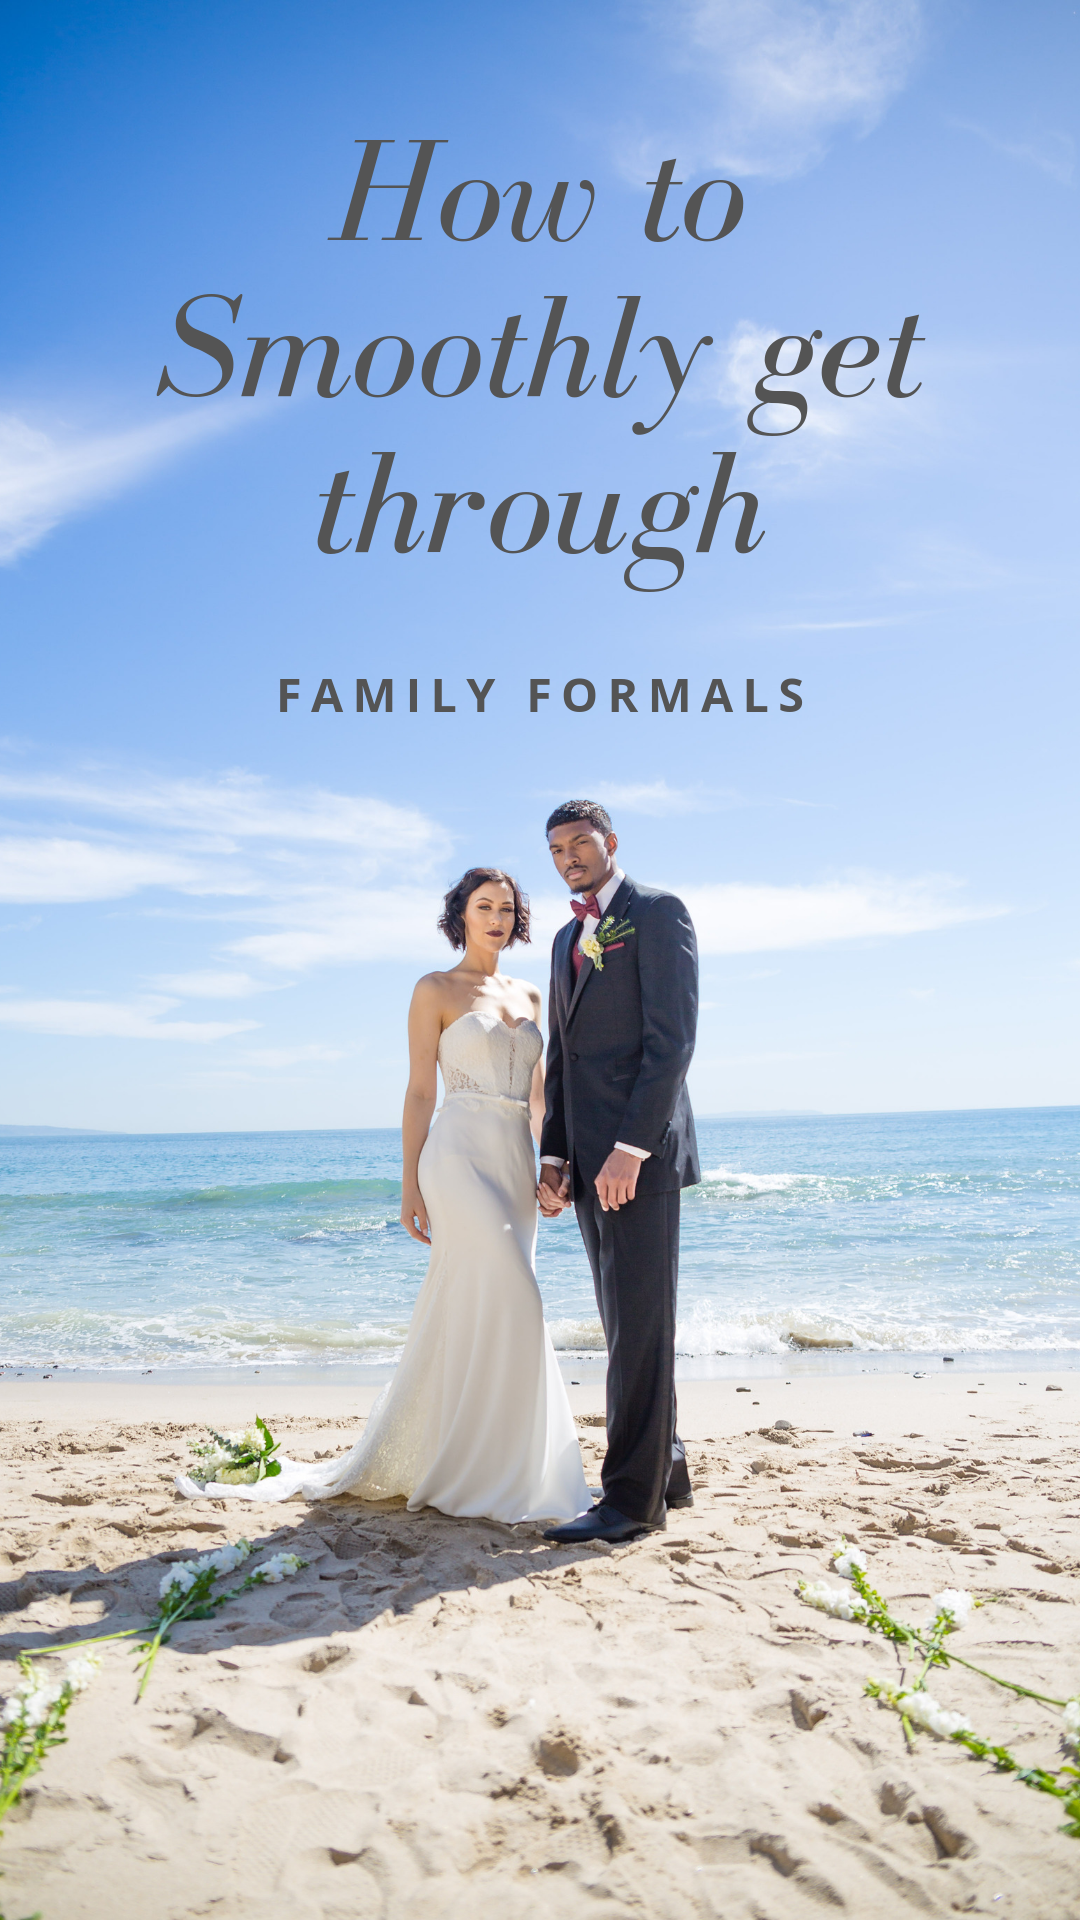 Tips to smoothly get through family formals